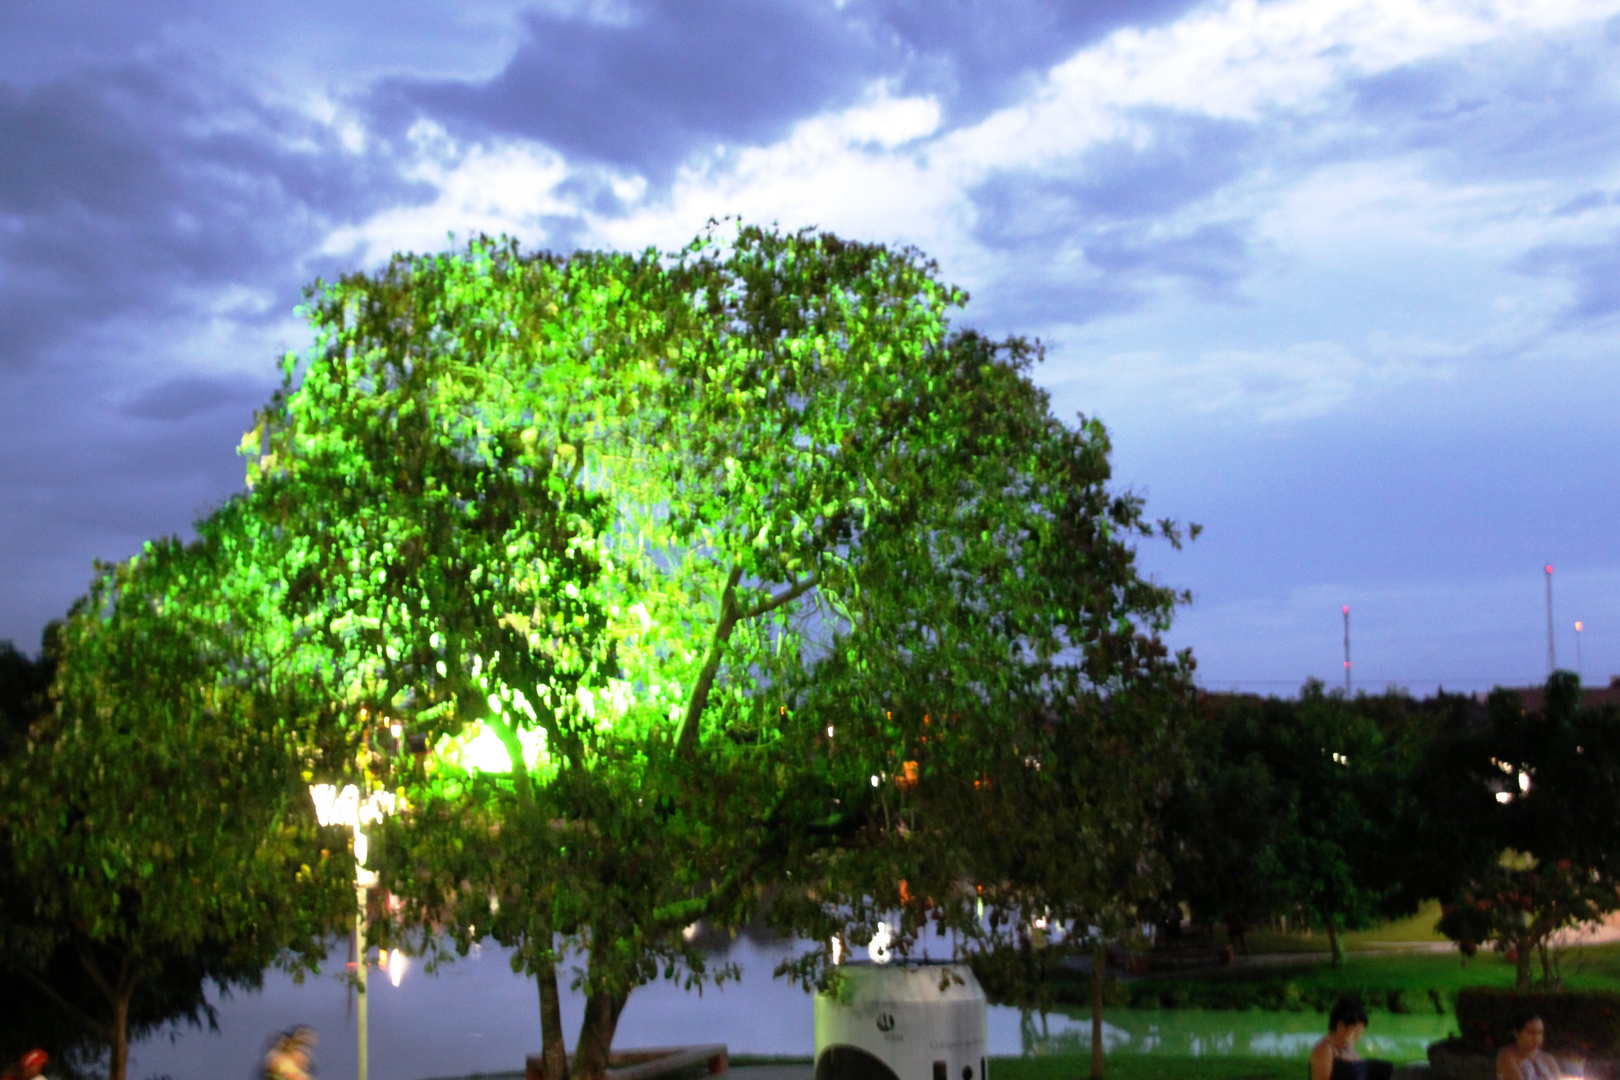 Paragominas Brazil in the evening 0377